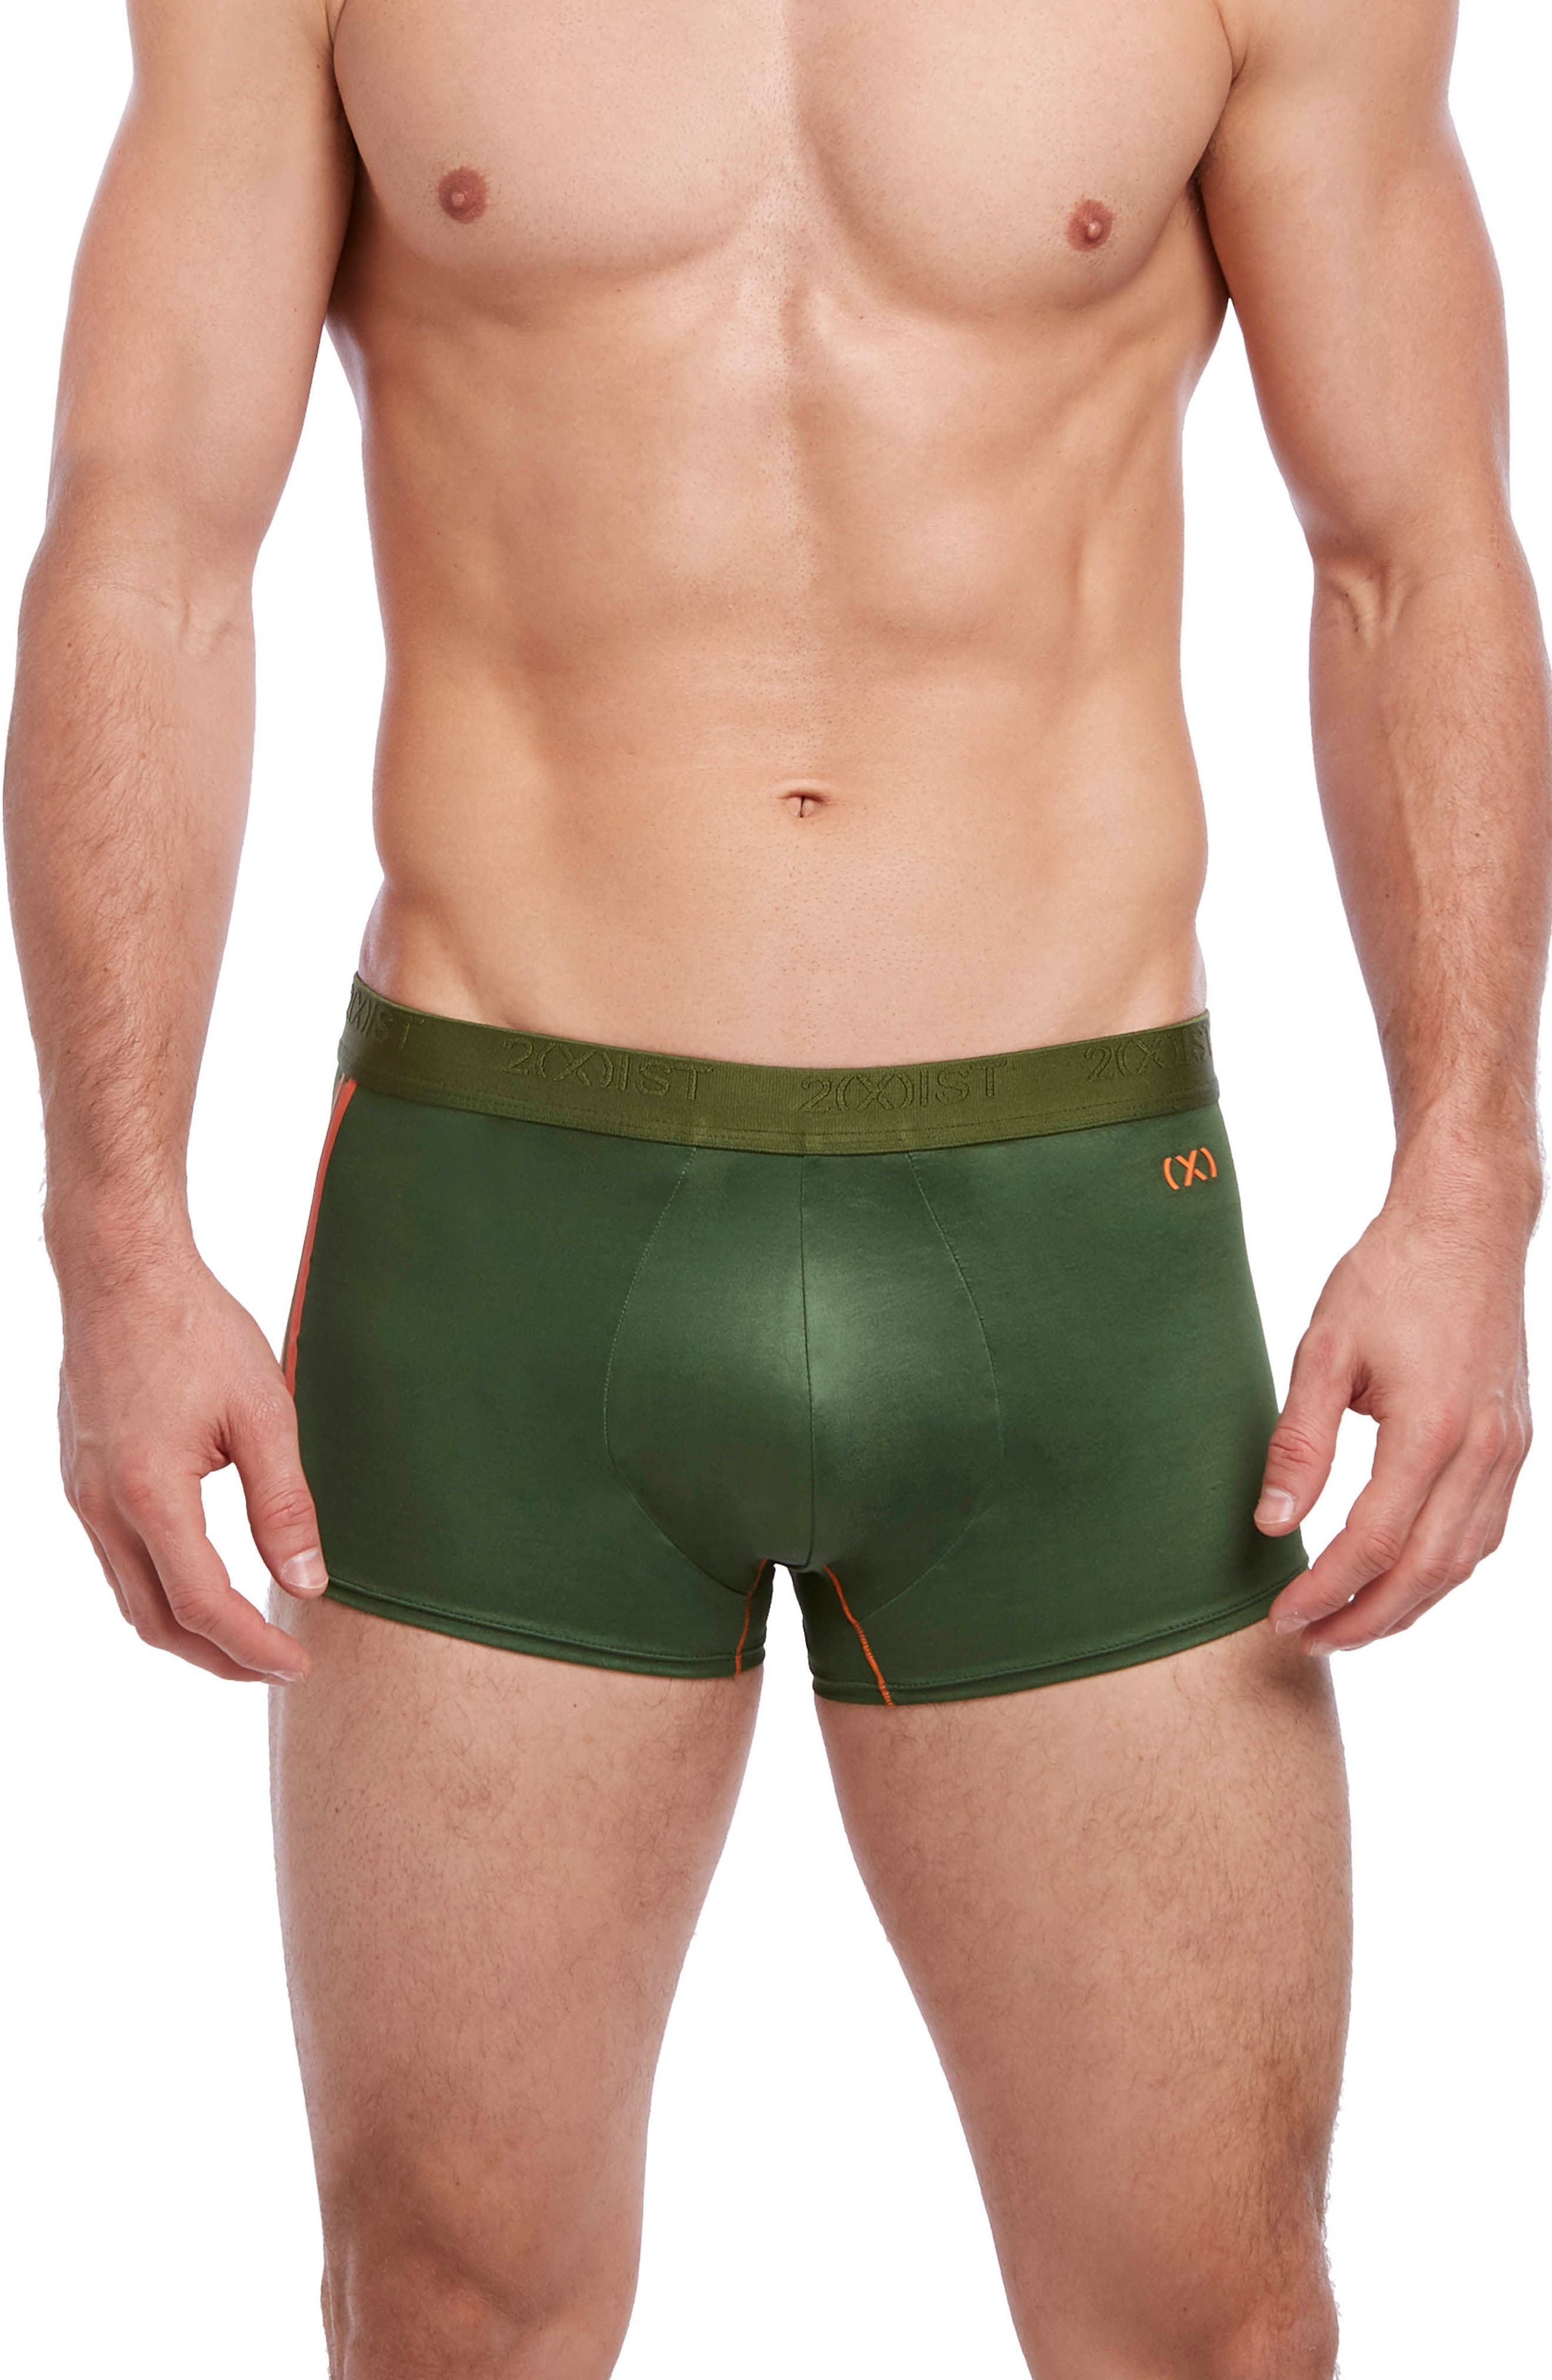 Military No-Show Trunks,                         Main,                         color, Chive/ Golden Poppy